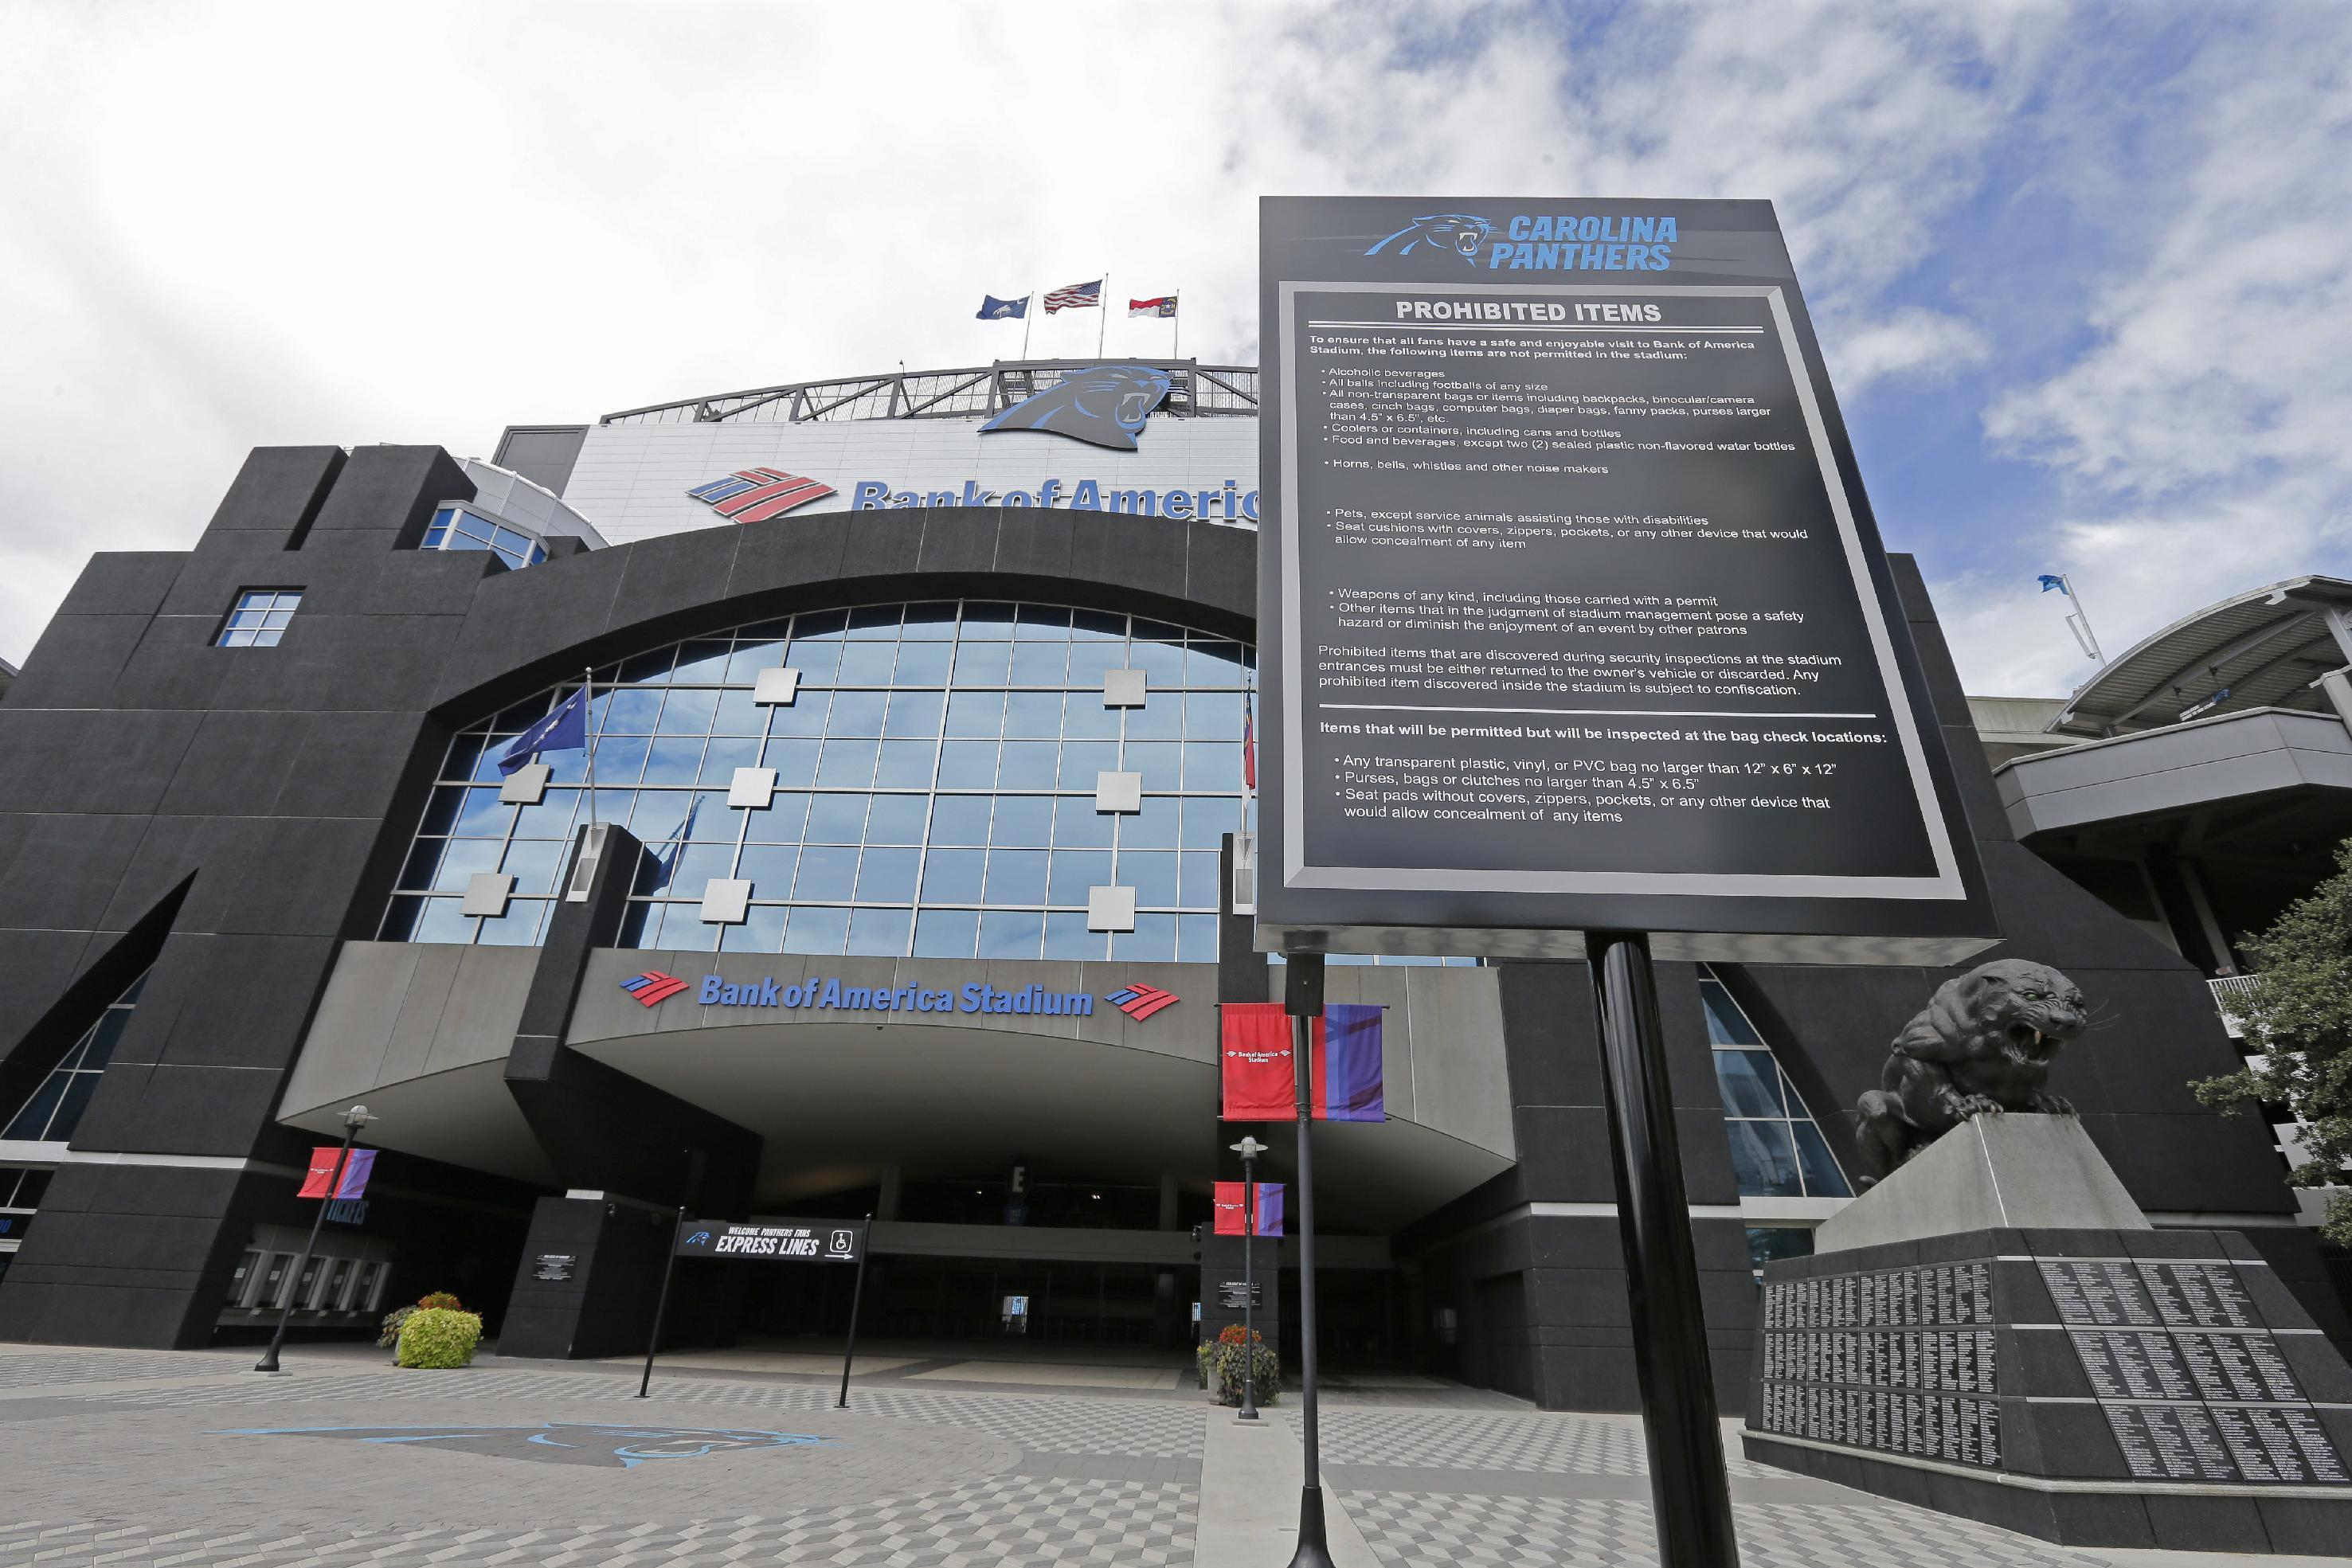 Report: Protesters planning to block entrances at Panthers stadium